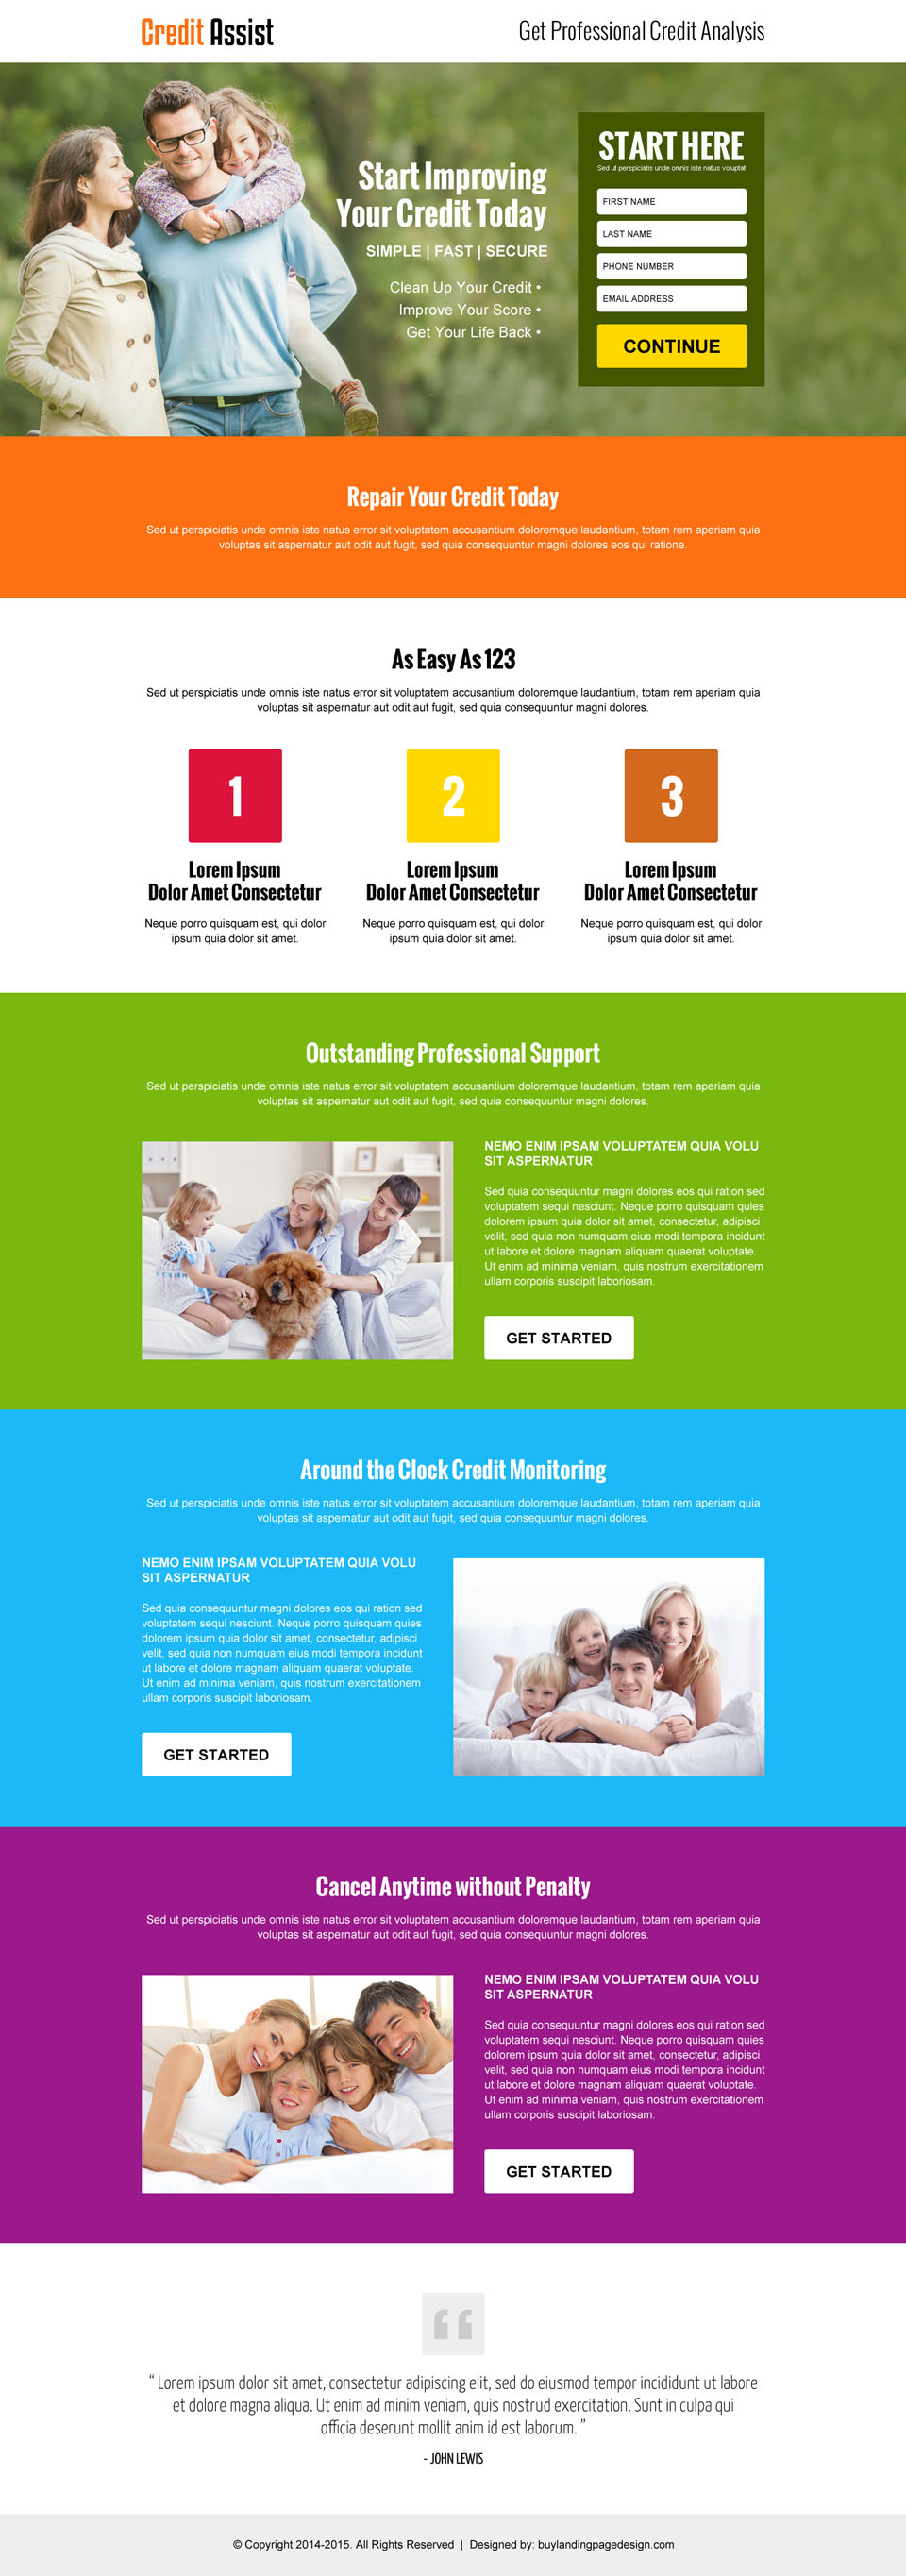 credit-analysis-service-lead-generation-best-converting-landing-page-design-template-024